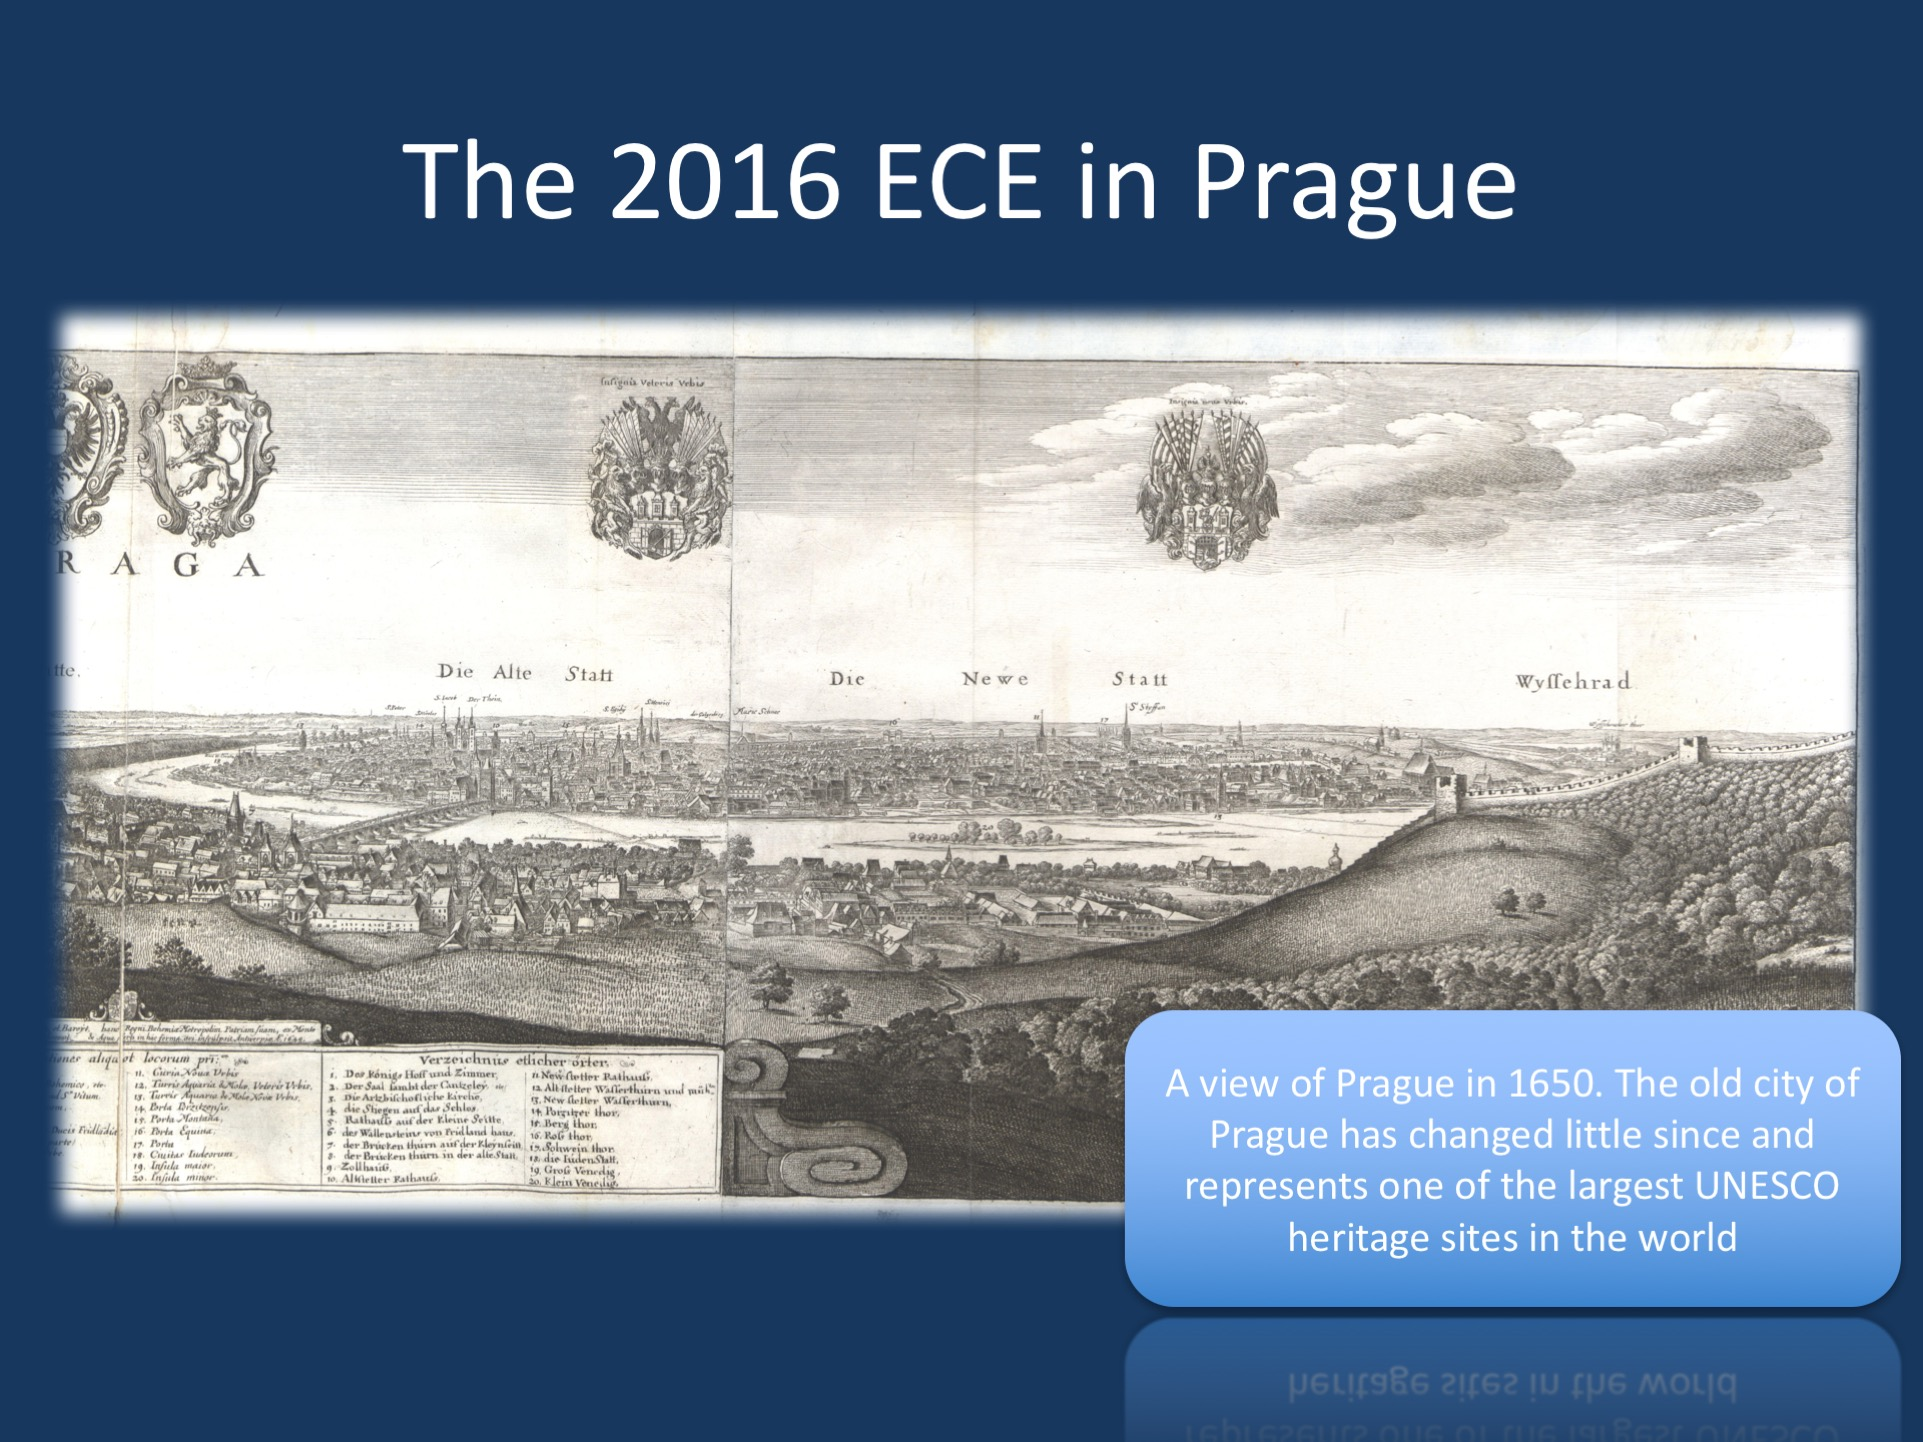 "The 2016 ECE in Prague, Czechia. The current panorama of Prague was drawn in 1650 and shows a view of the city including the Hradčany (Prague Castle), which is the largest castle in Central Europe. Prague is so historical that even terms like Nové Město (New Town, ""Newe Statt"") are misleading – it is new as it was founded by Charles IV (1346–1378), who also founded Charles Univeristy in 1347, one of the oldest universities in the world. My alma mater in Heidelberg was ""only"" founded in 1386. The image is modified from a historical overview called Bohemiae Moraviae et Silesiae (Merian, 1650), available in the public domain. The current reproduction is by Martin Zeiller - digitized by: UB Düsseldorf, Public Domain, https://commons.wikimedia.org/w/index.php?curid=5768465"